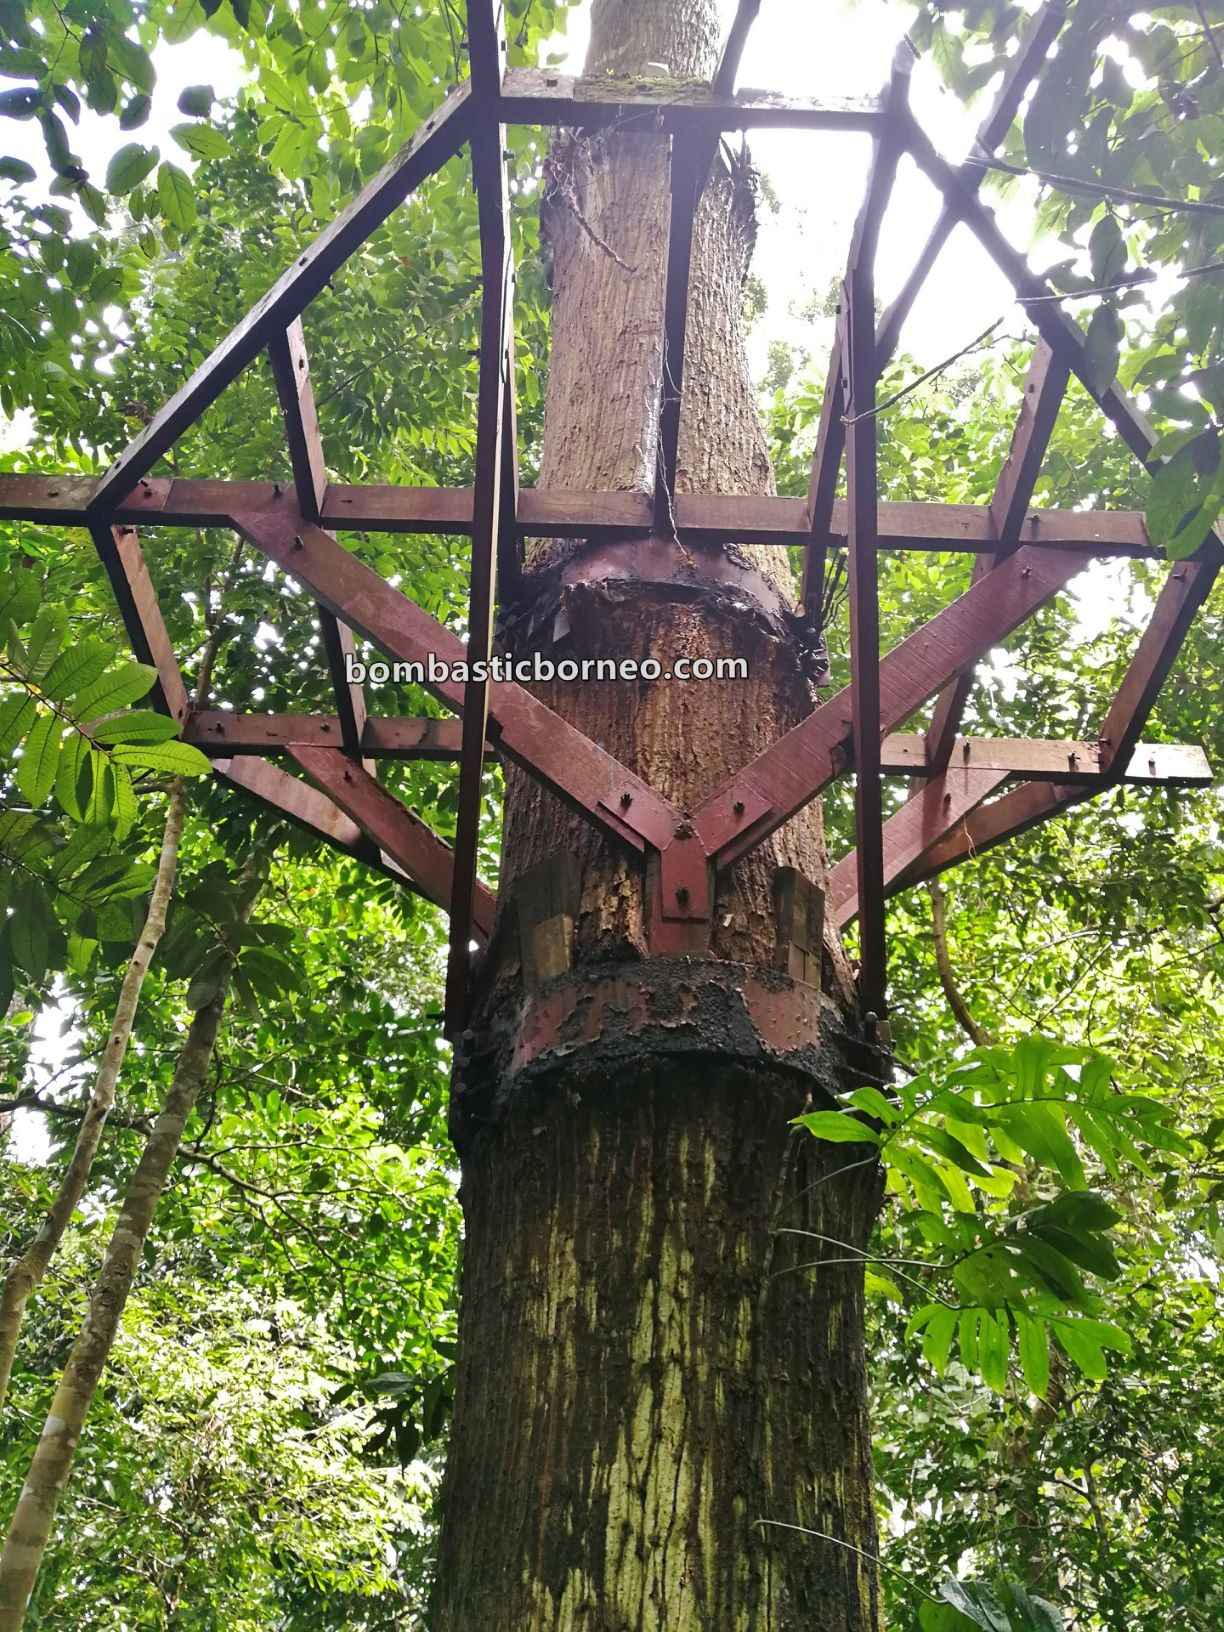 Gemok Hill Forest Reserve, adventure, nature, outdoor, jungle trekking, Hutan simpan, canopy bridge, Malaysia, Sabah, Tourism, tourist attraction, Trans Borneo, 马来西亚沙巴, 斗湖旅游景点, 森林保护区吊桥,